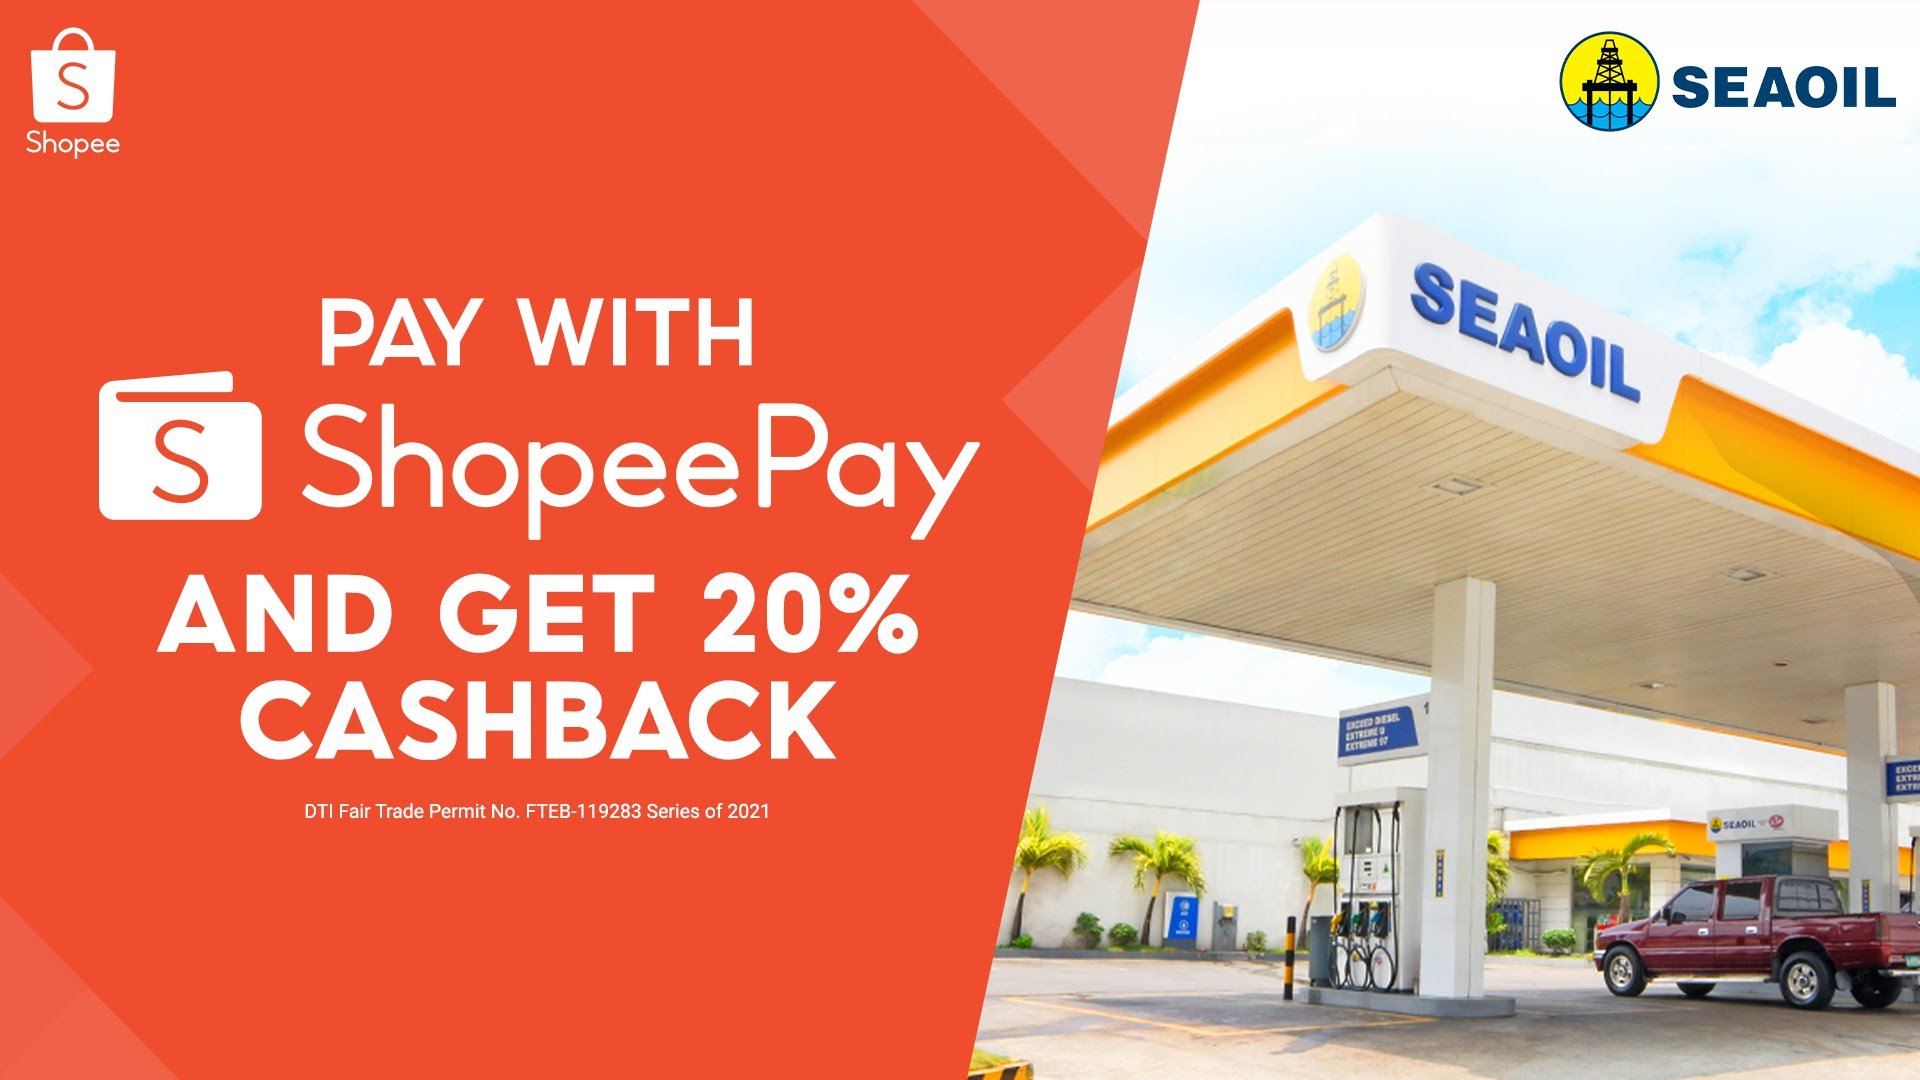 You can now pay with ShopeePay at SEAOIL